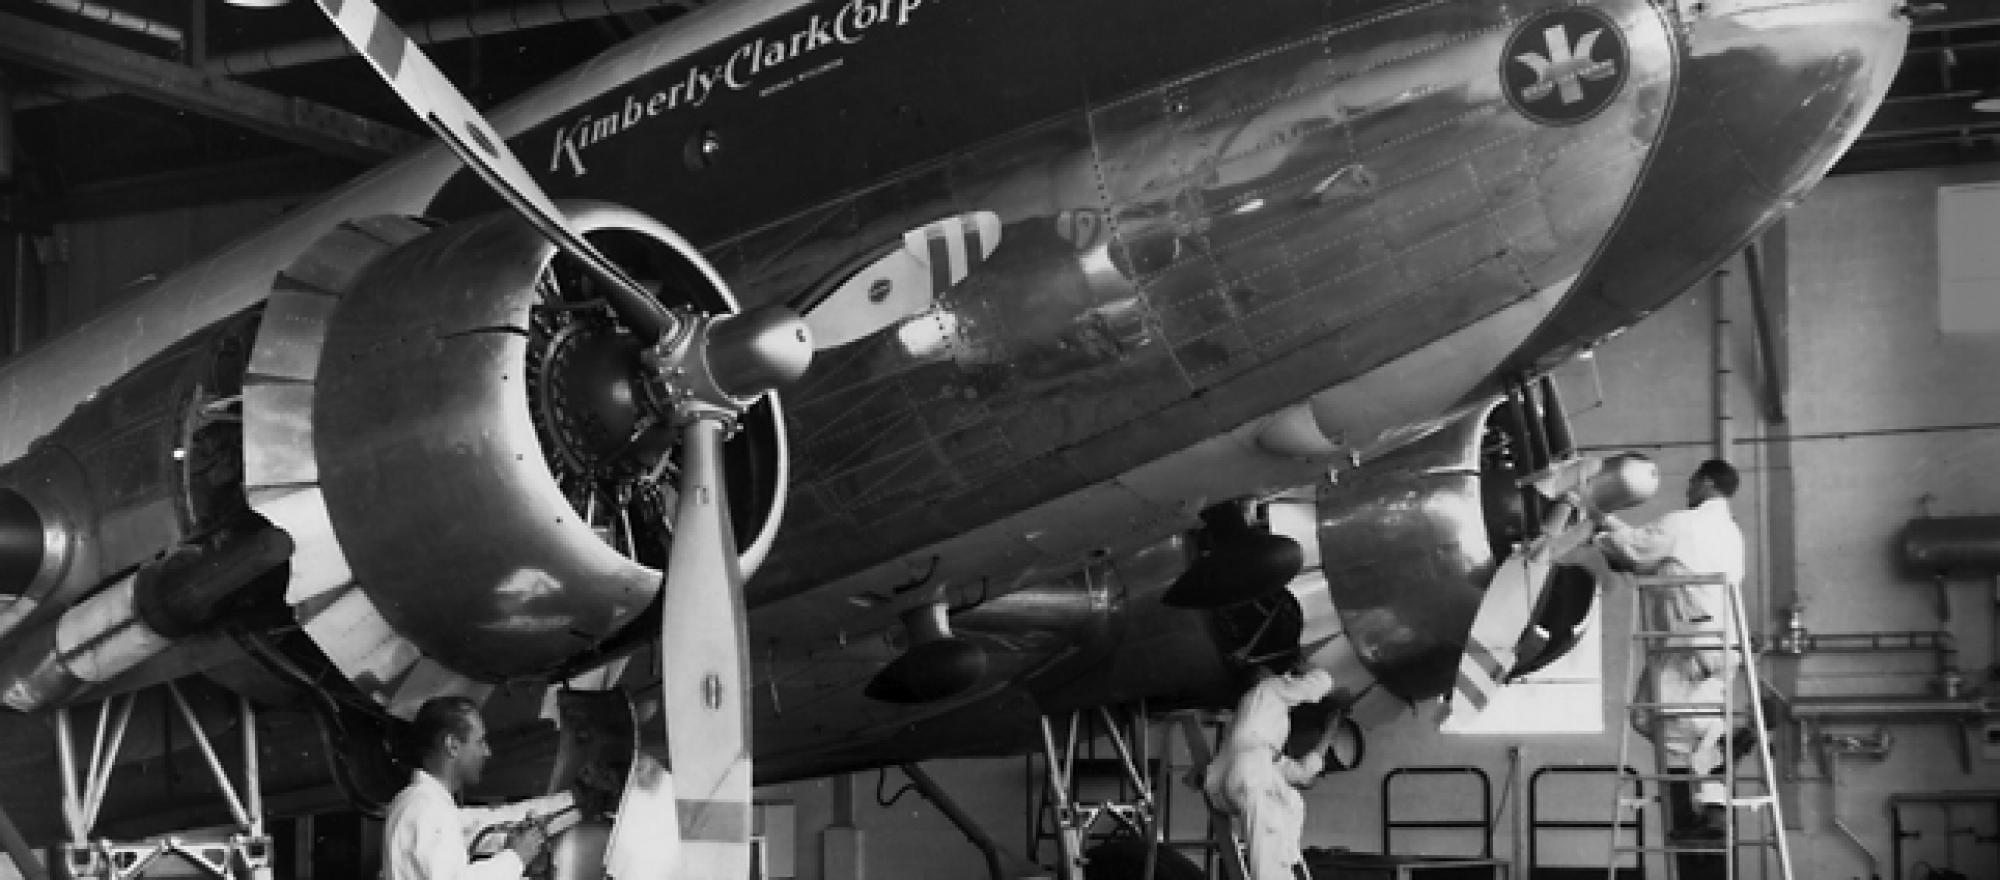 Kimberly-Clark operated the iconic douglas DC-3.